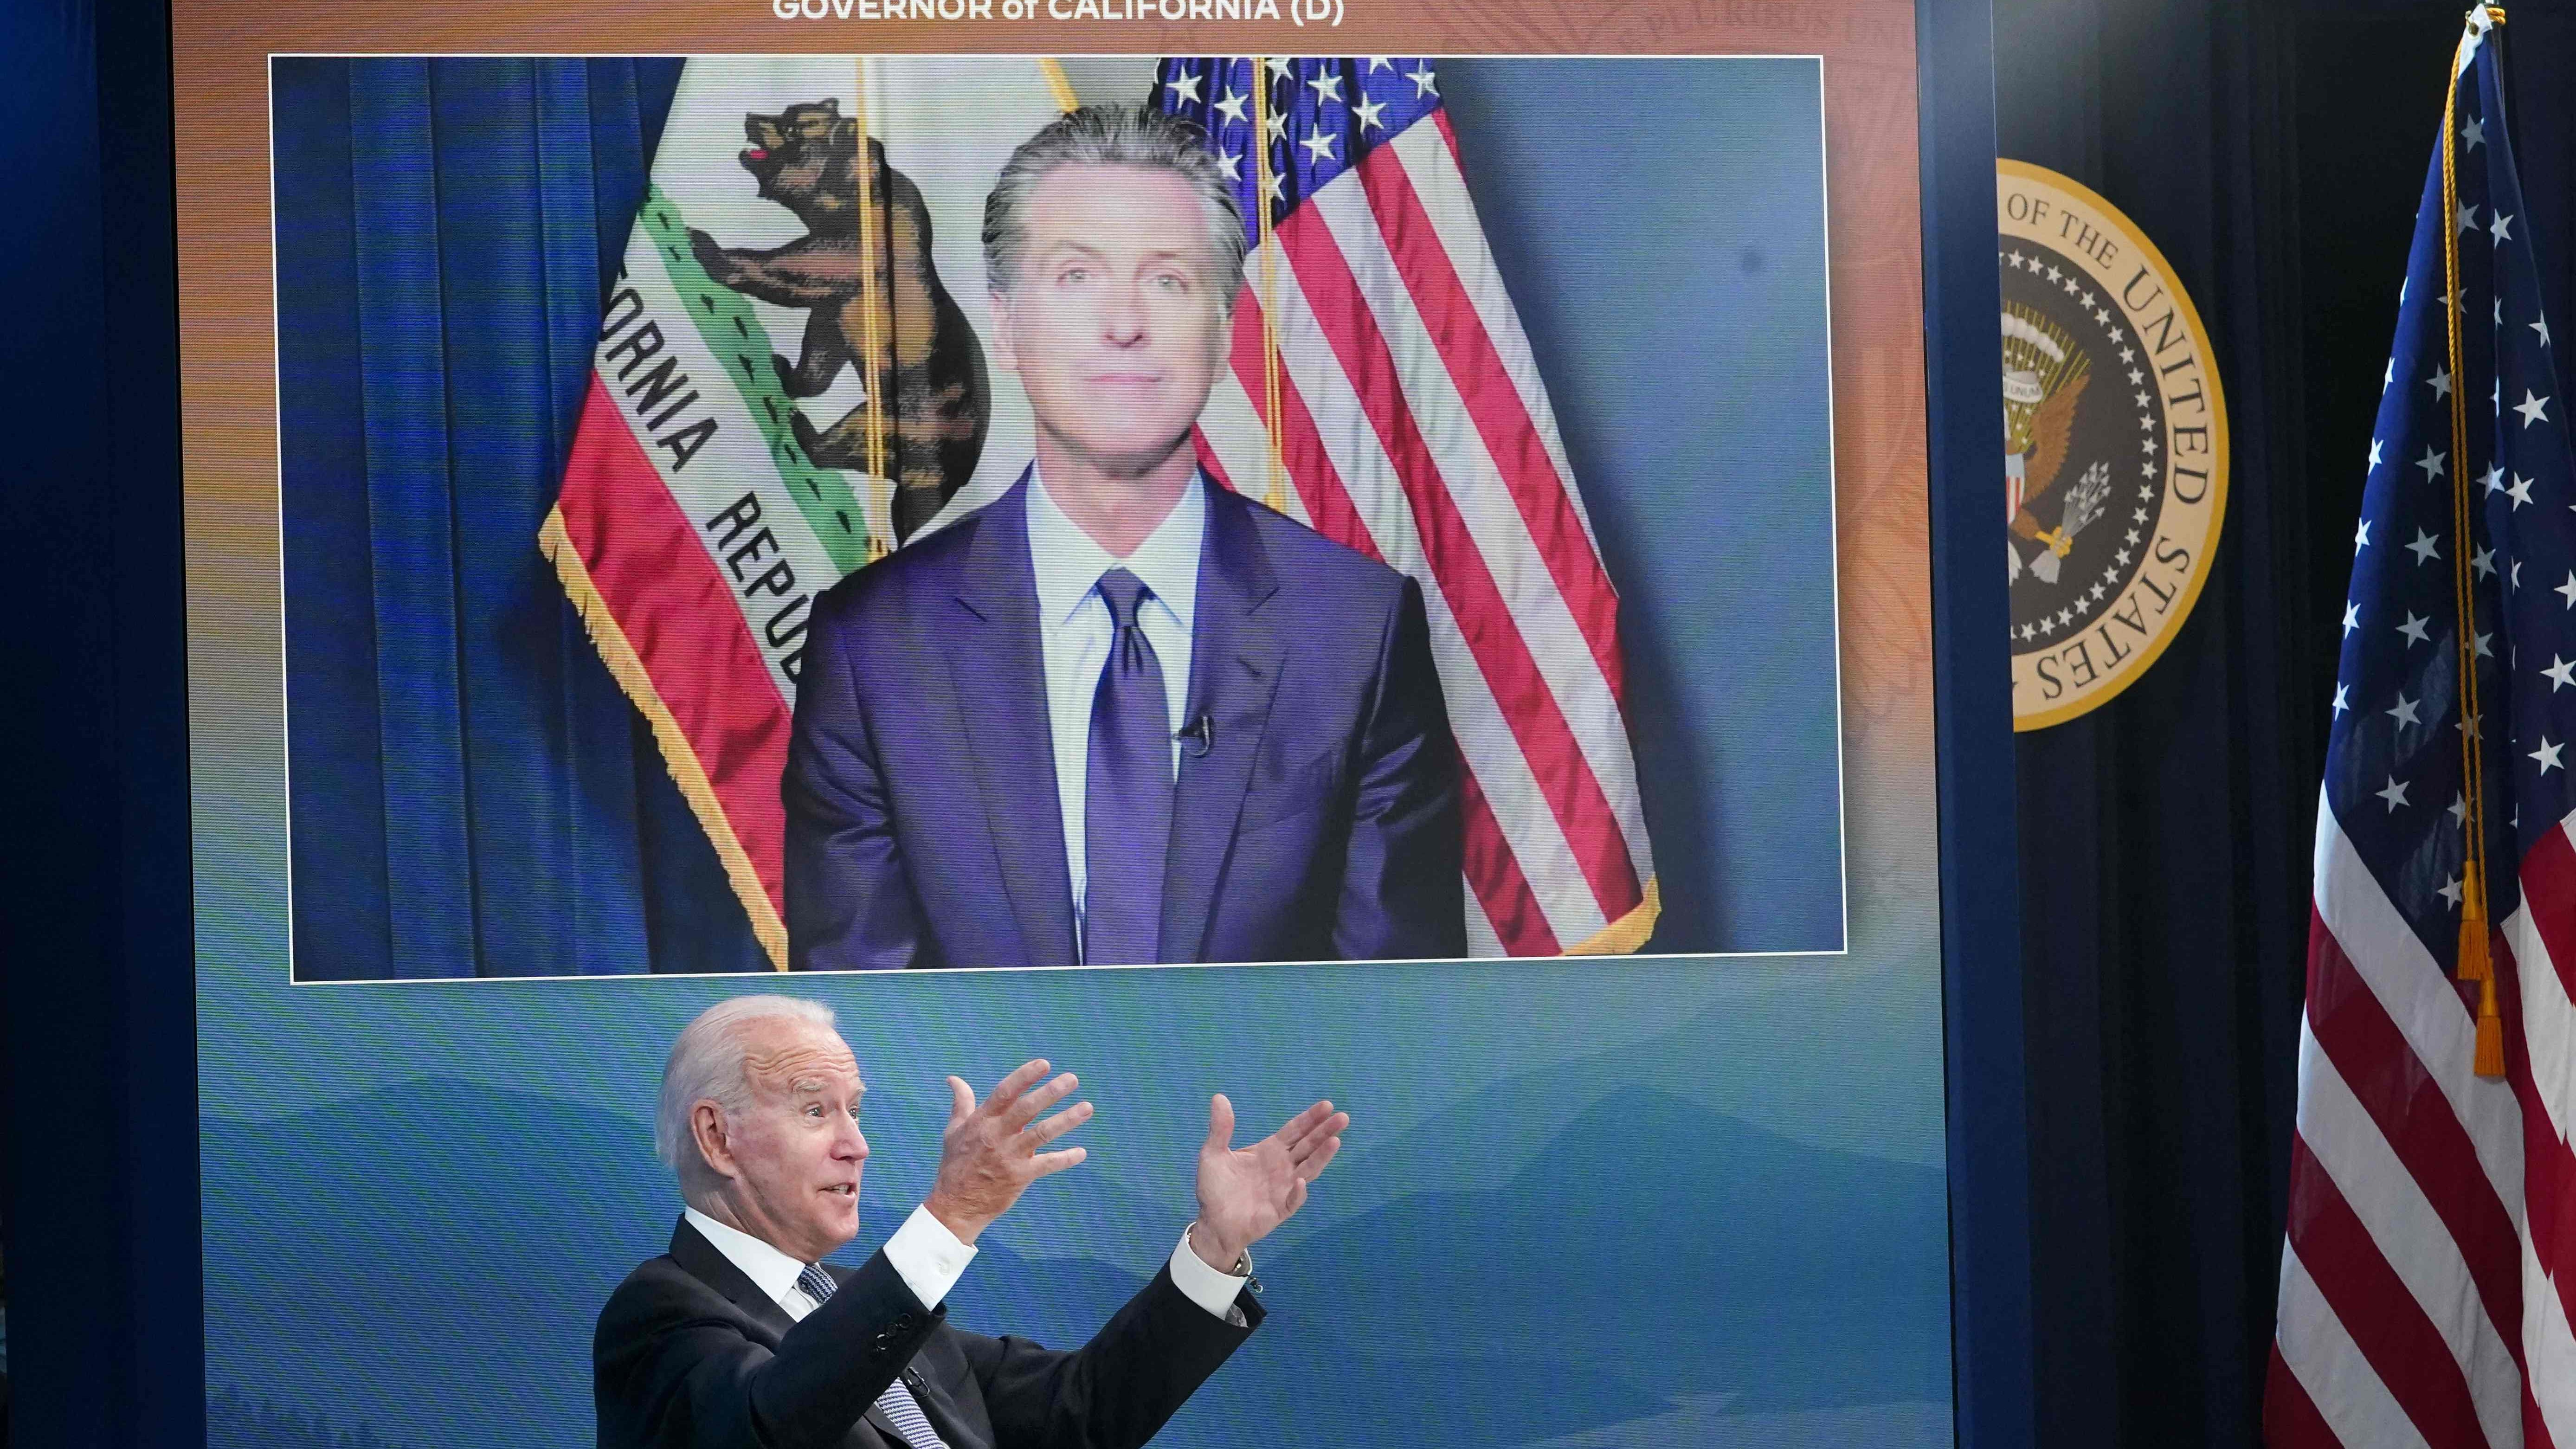 US President Joe Biden speaks as California Governor Gavin Newsom. on a screen, looks on during a meeting with state governors on wildfire prevention and preparedness in the South Court Auditorium of the Eisenhower Executive Office Building, next to the White House, in Washington, DC on July 30, 2021. (Photo by MANDEL NGAN / AFP) (Photo by MANDEL NGAN/AFP via Getty Images)